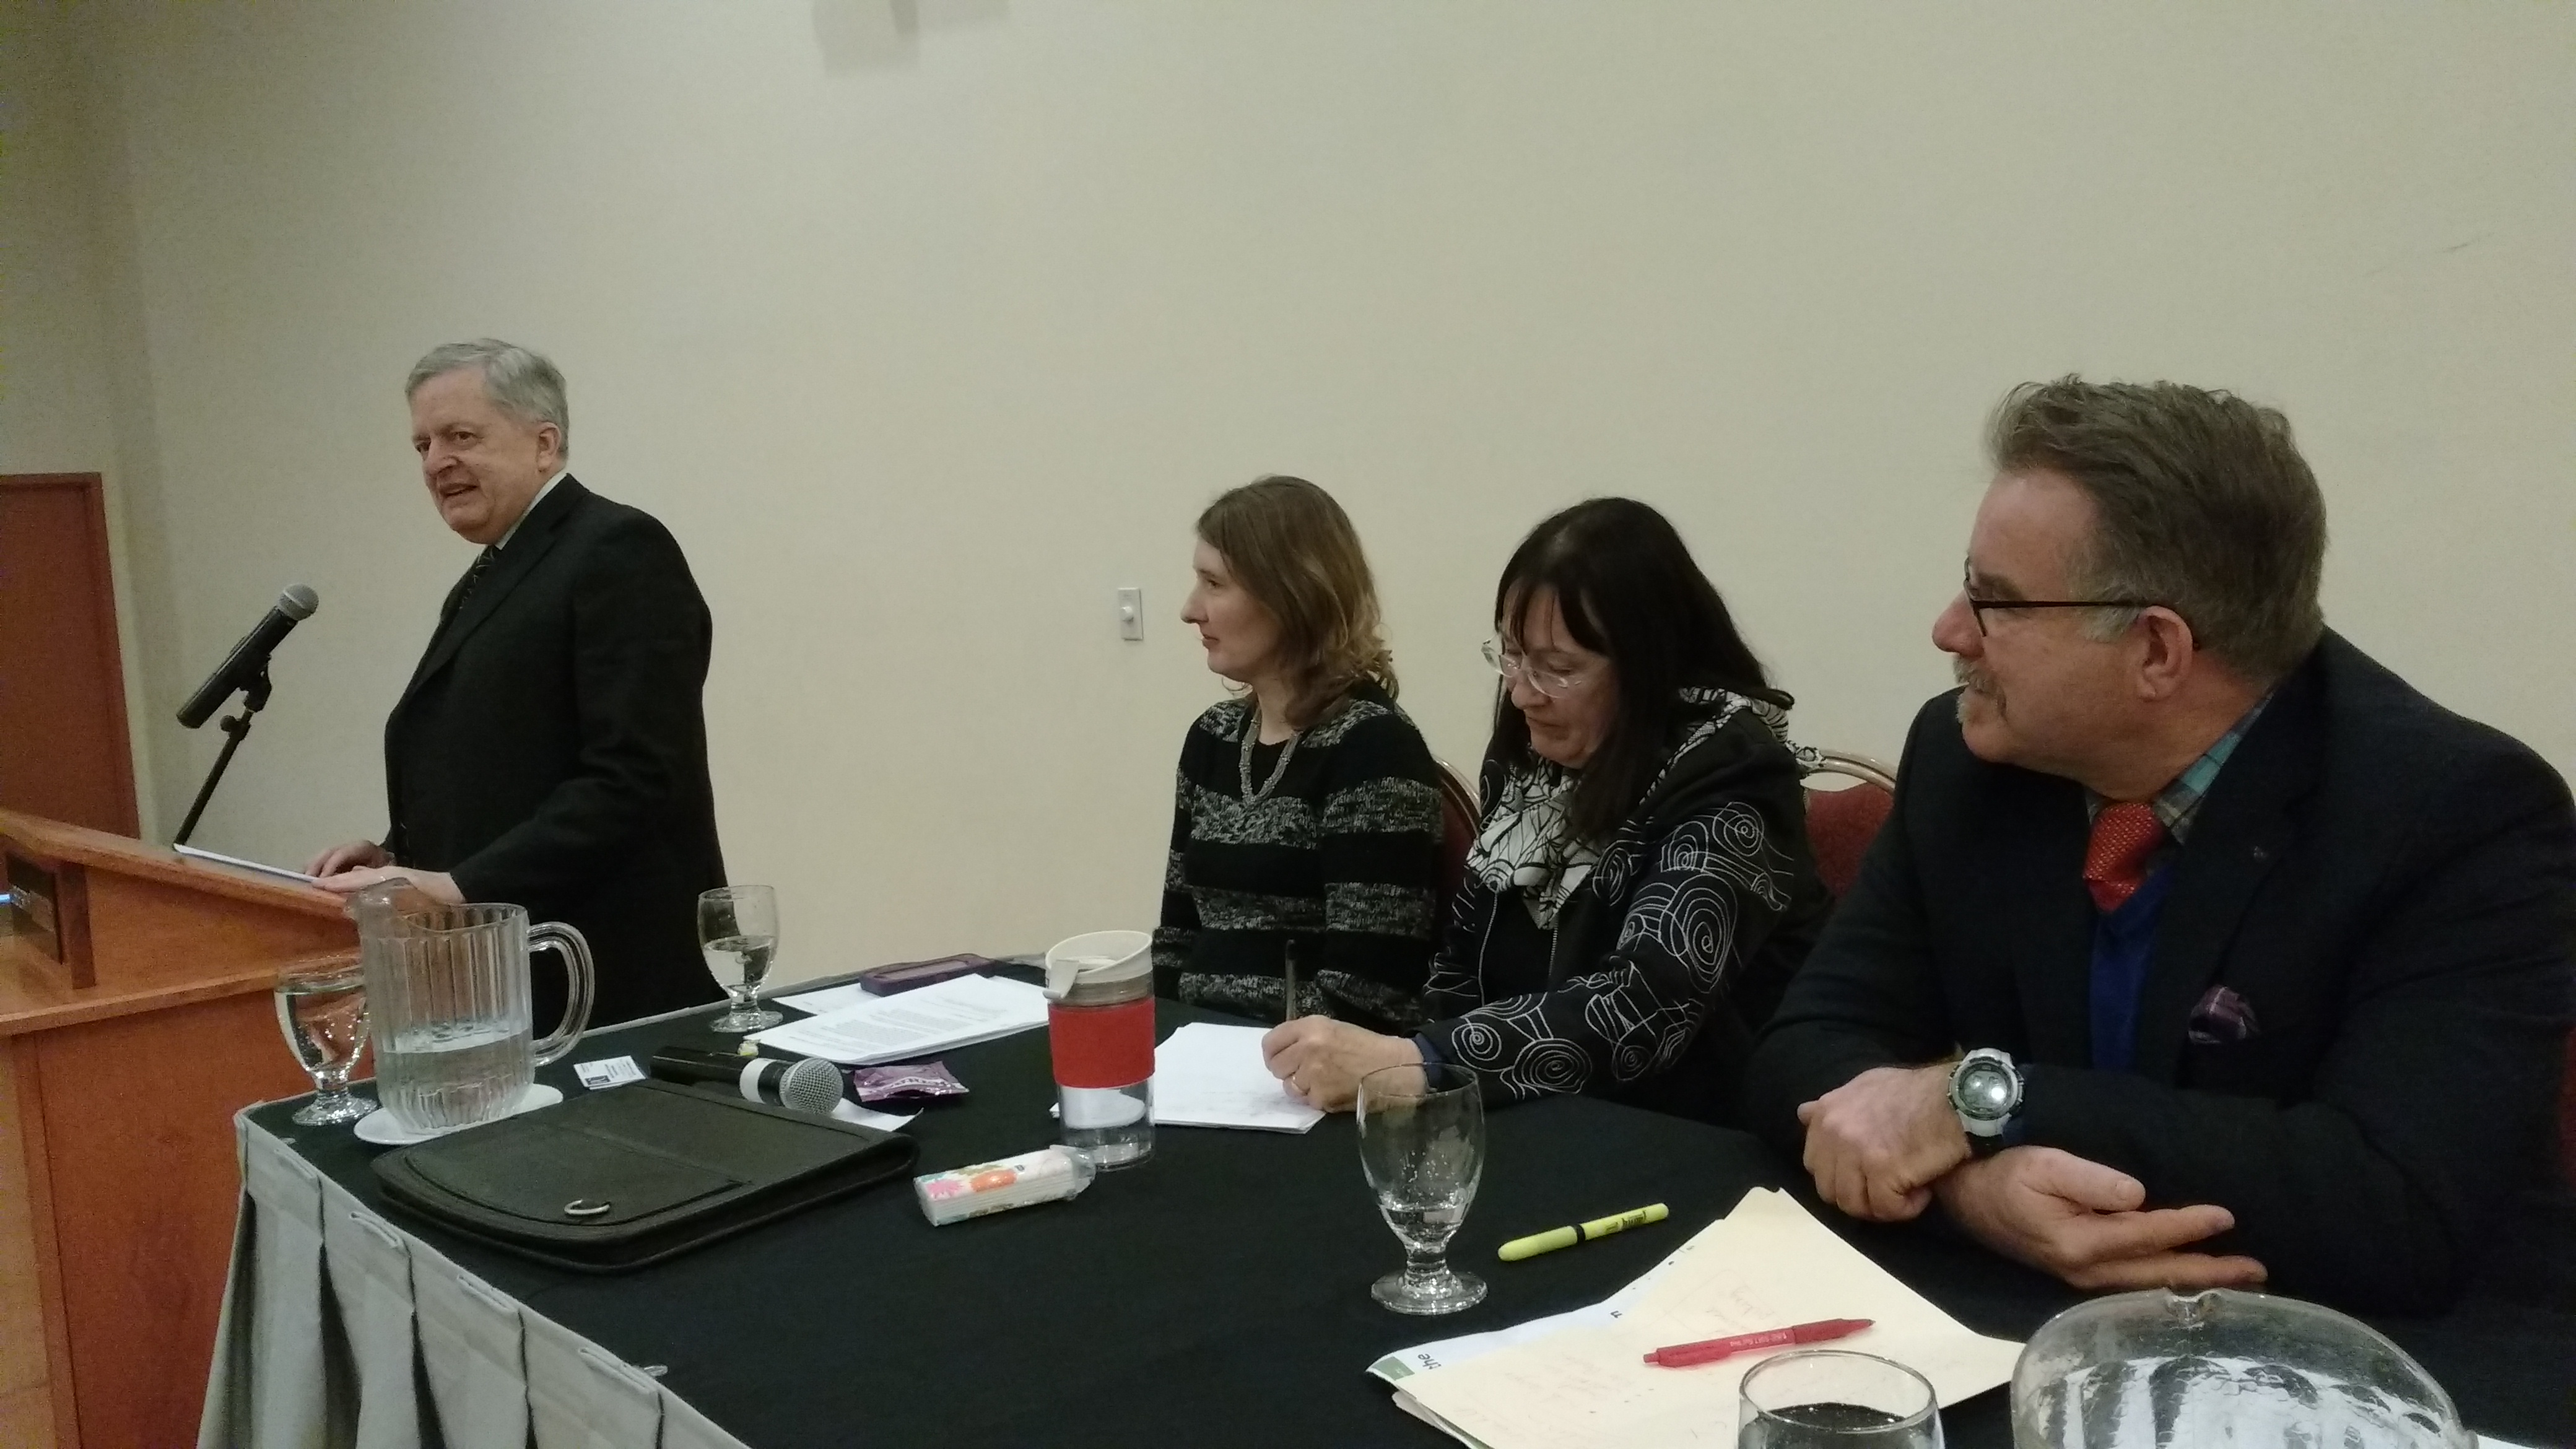 Oakville Mayor Rob Burton, meeting chair Margaret Prophet, panelists Connie Spek and David Donnelly -AWARE Simcoe photo